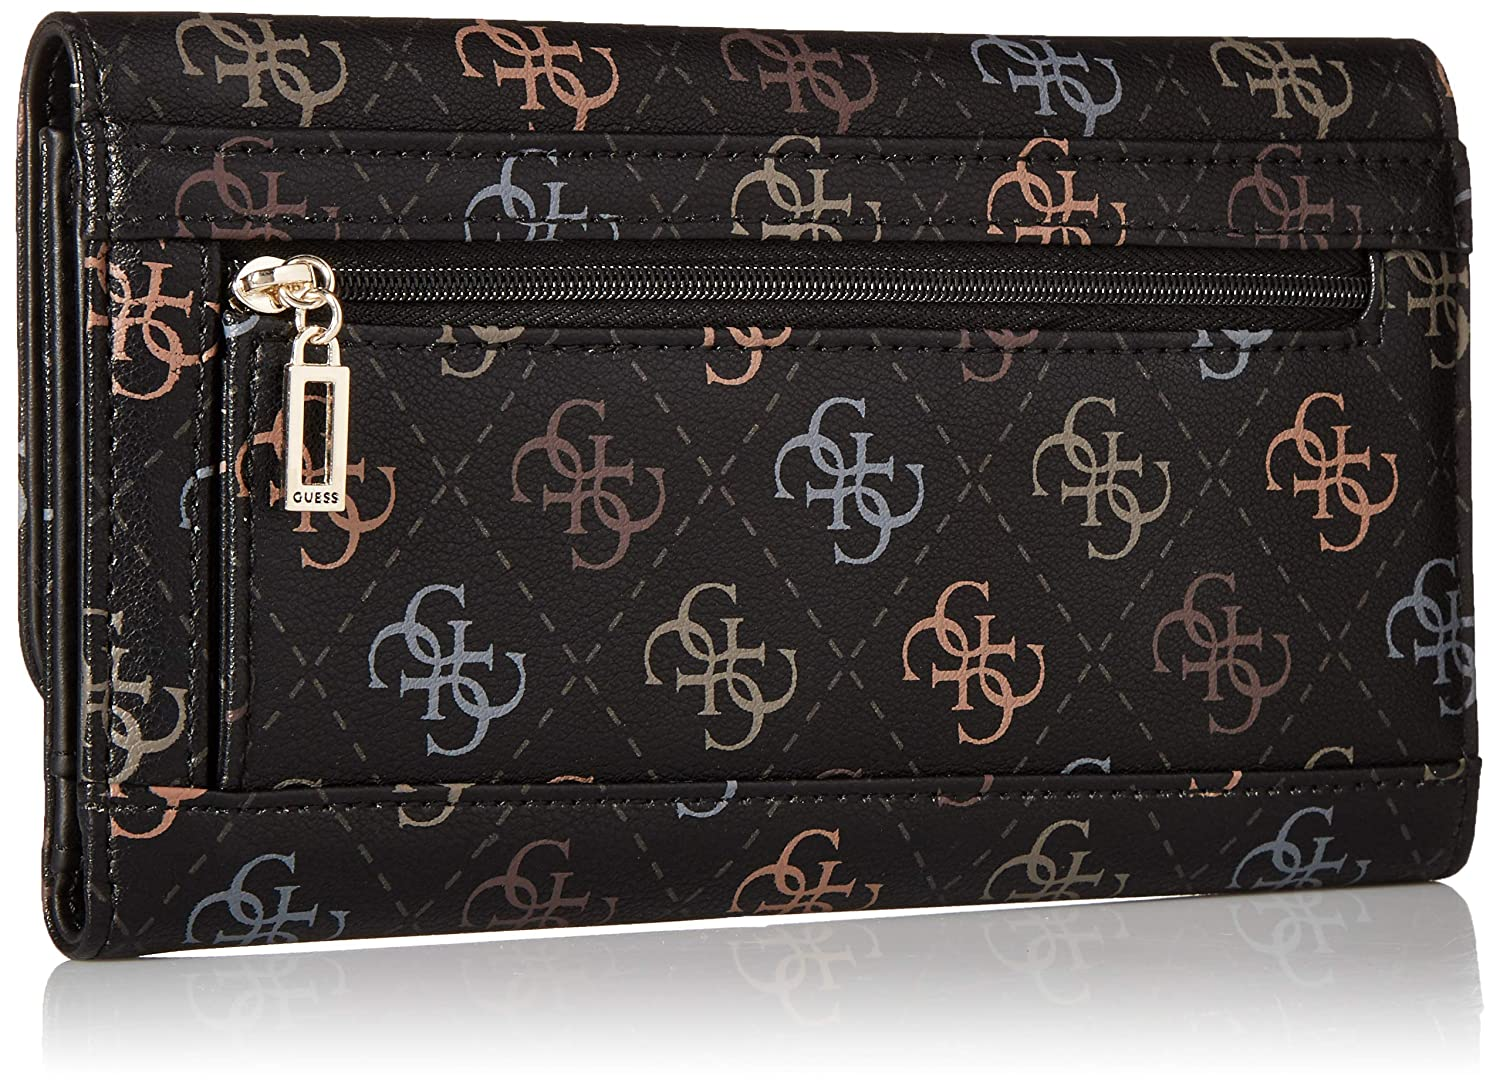 Amazon.com: GUESS Kamryn SQ - Cartera de embrague múltiple ...